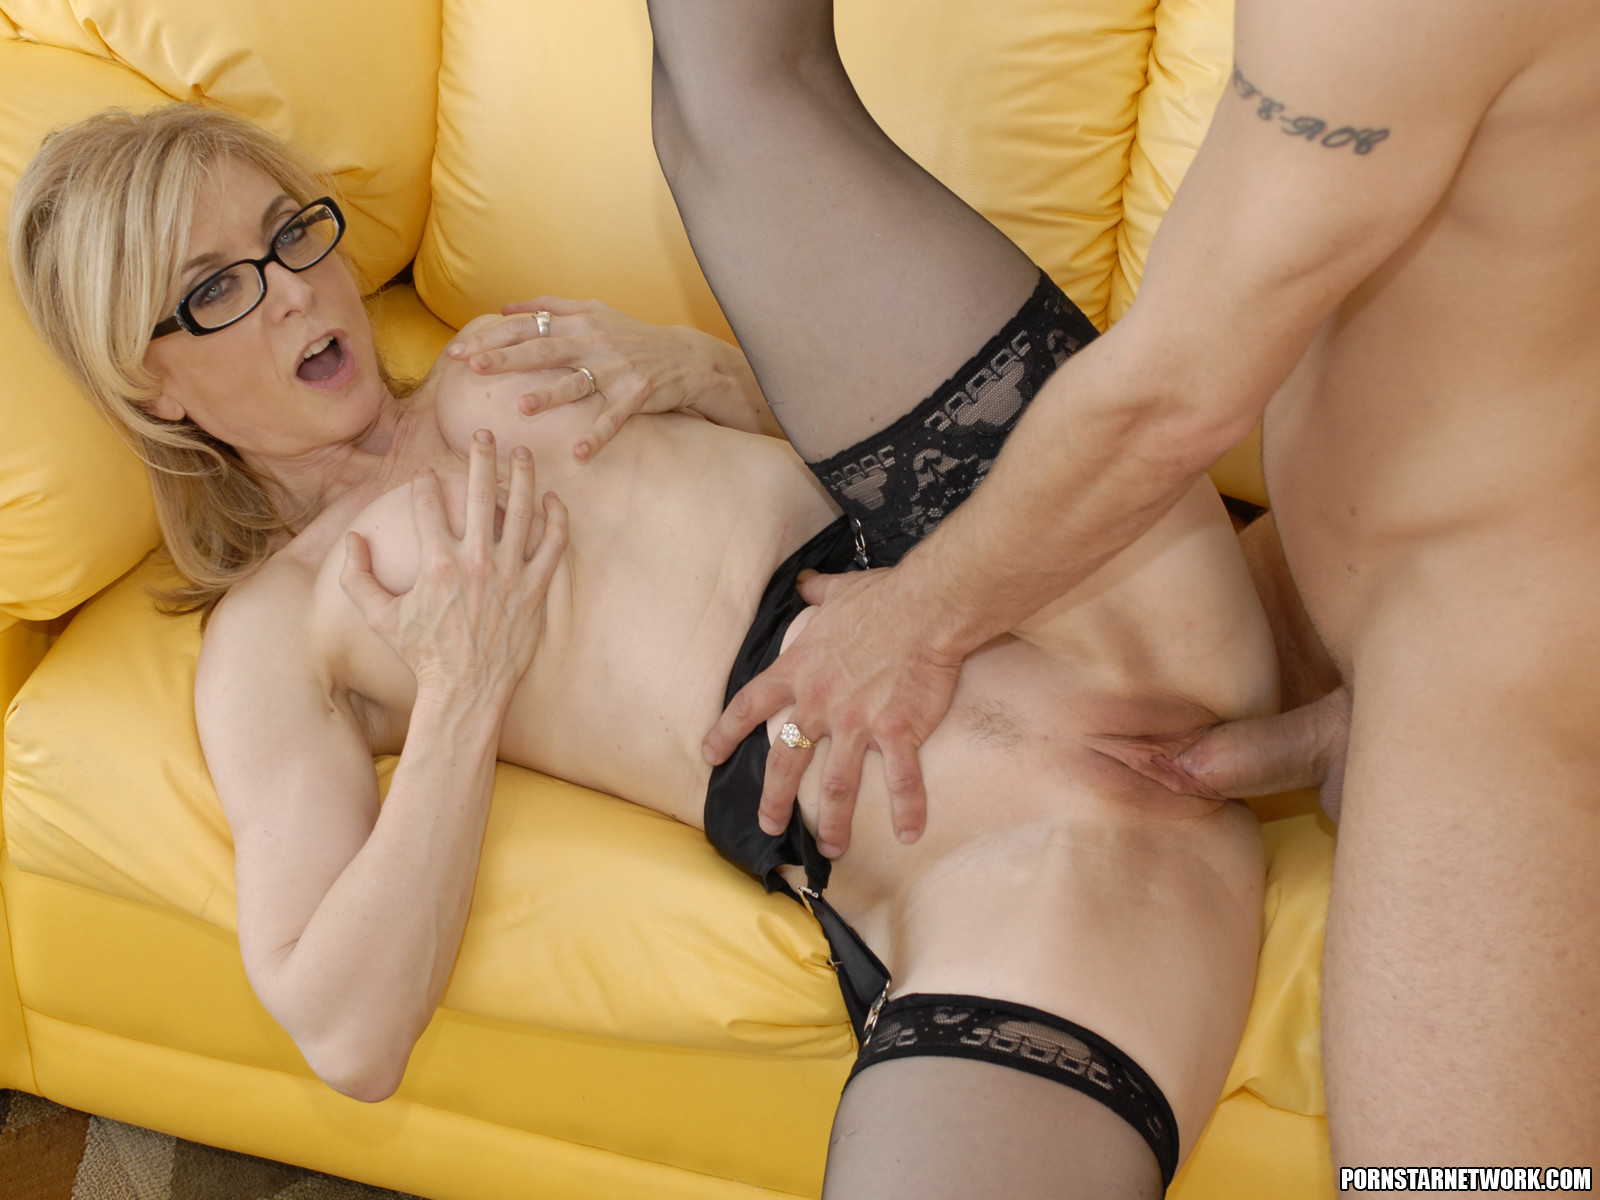 Anal milf nina hartley swallows - 1 4